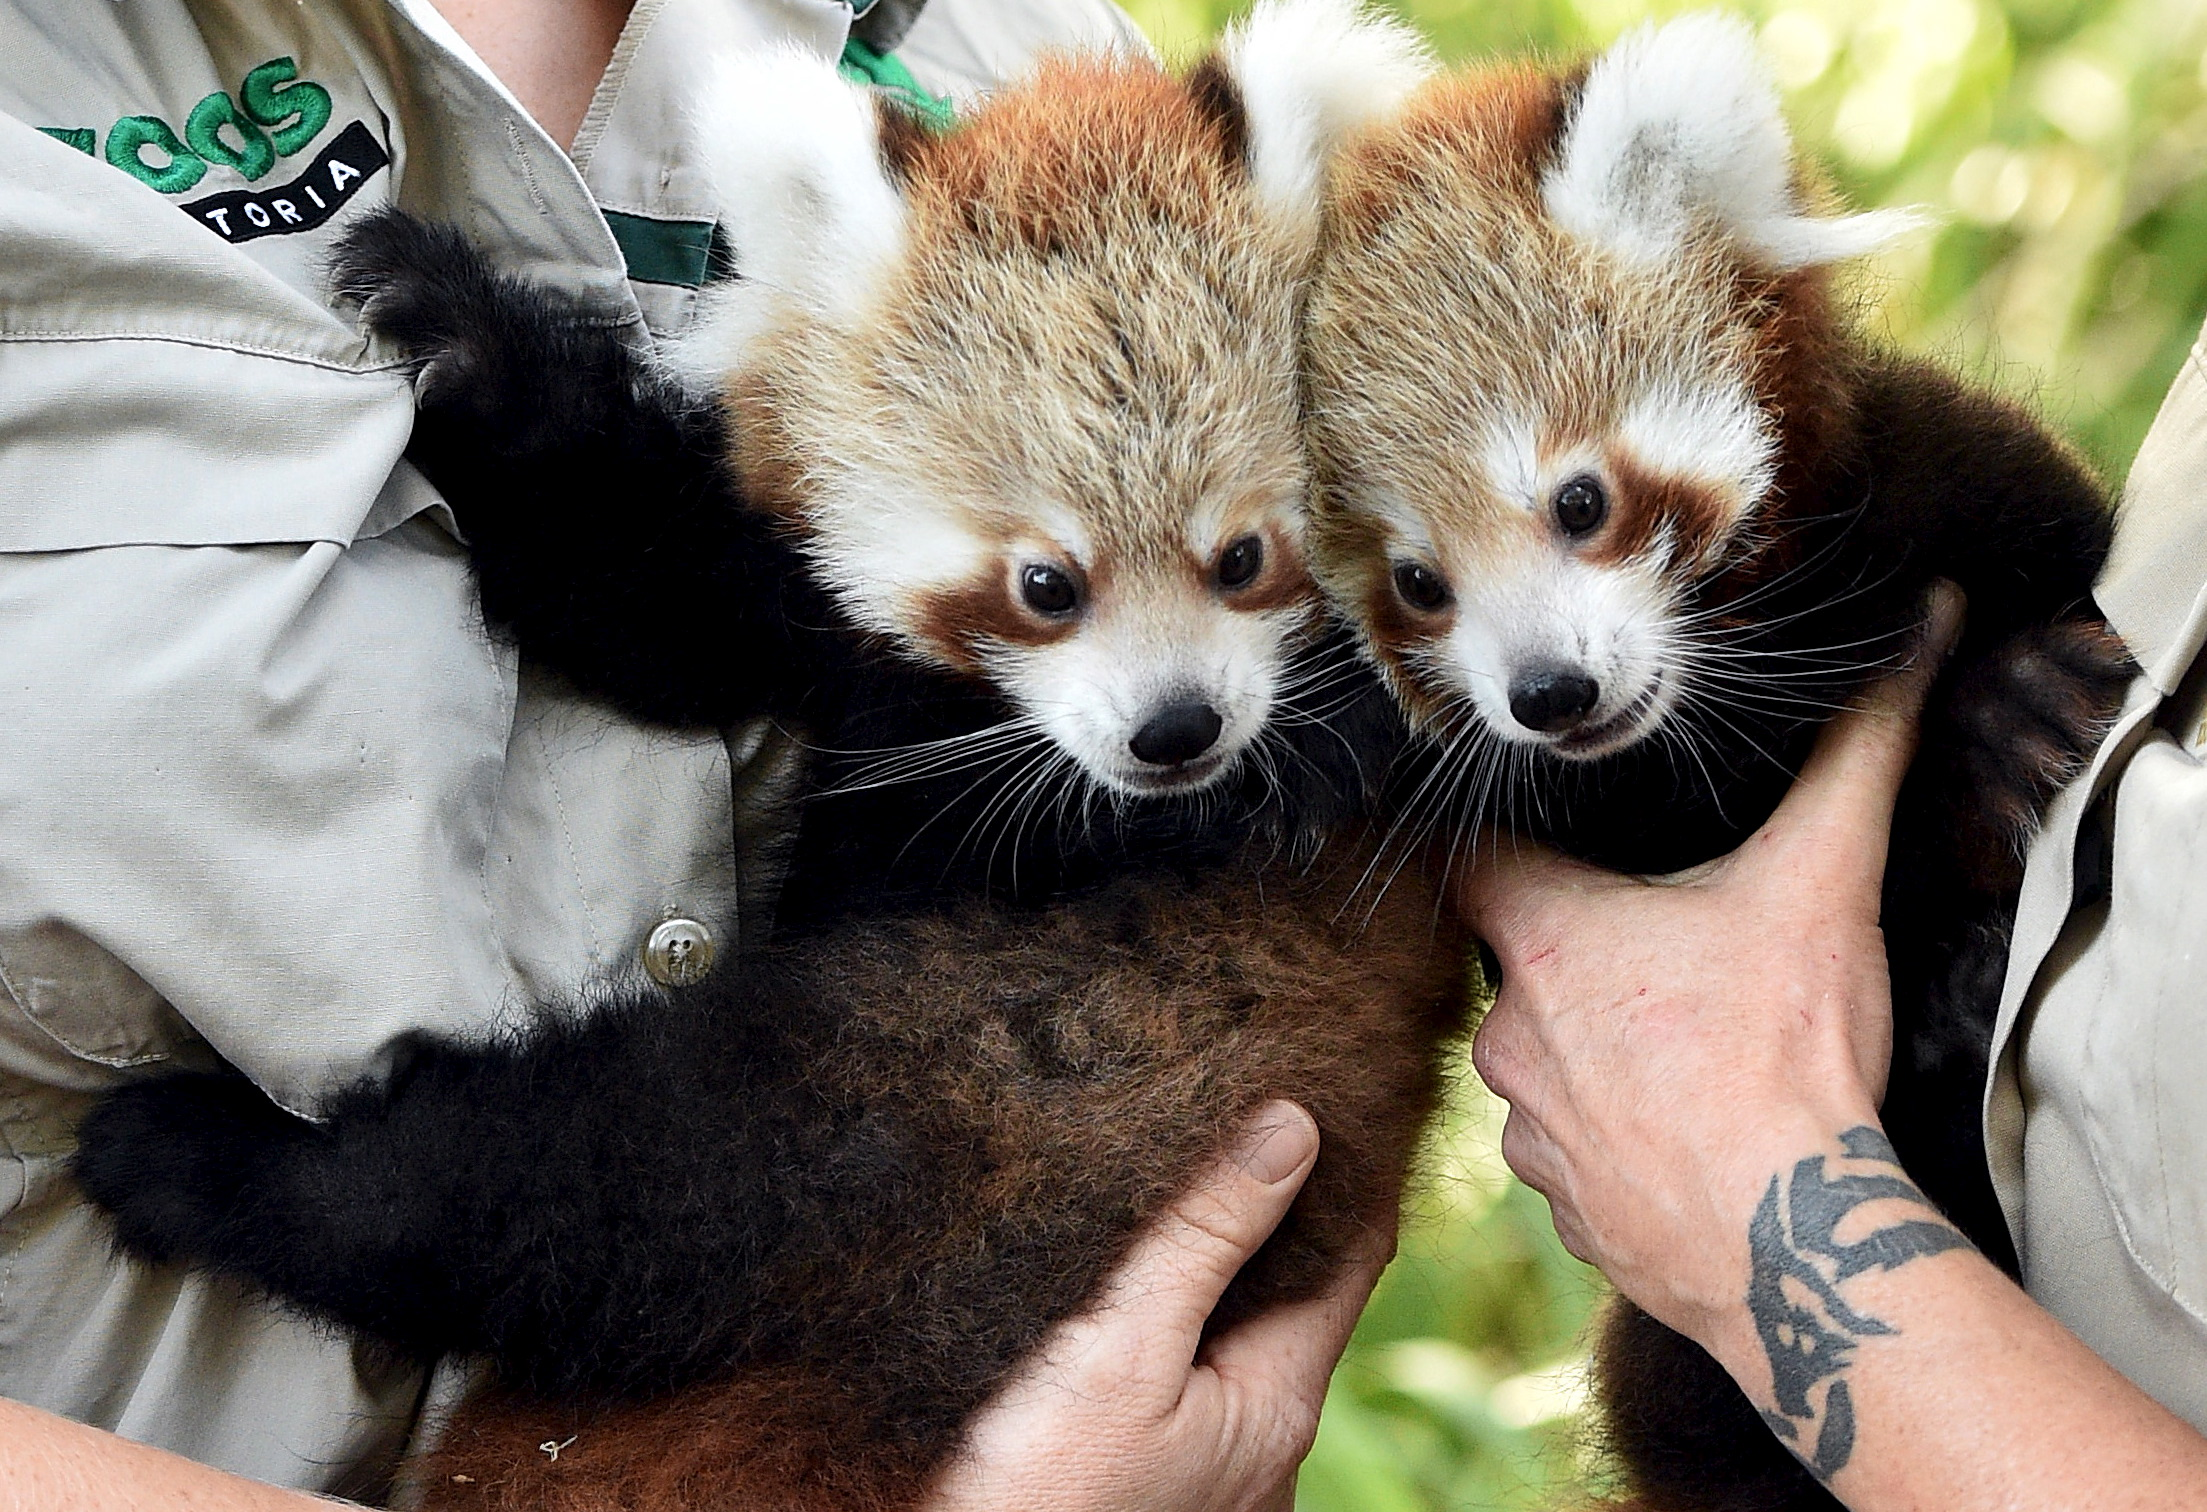 Слайд 48 из 67: Red Panda cubs Mandu (L) and Keta, who were born in December last year, are held by their keepers as they prepare to be vacinated during their first public appearance at Melbourne Zoo in Australia March 2, 2016.